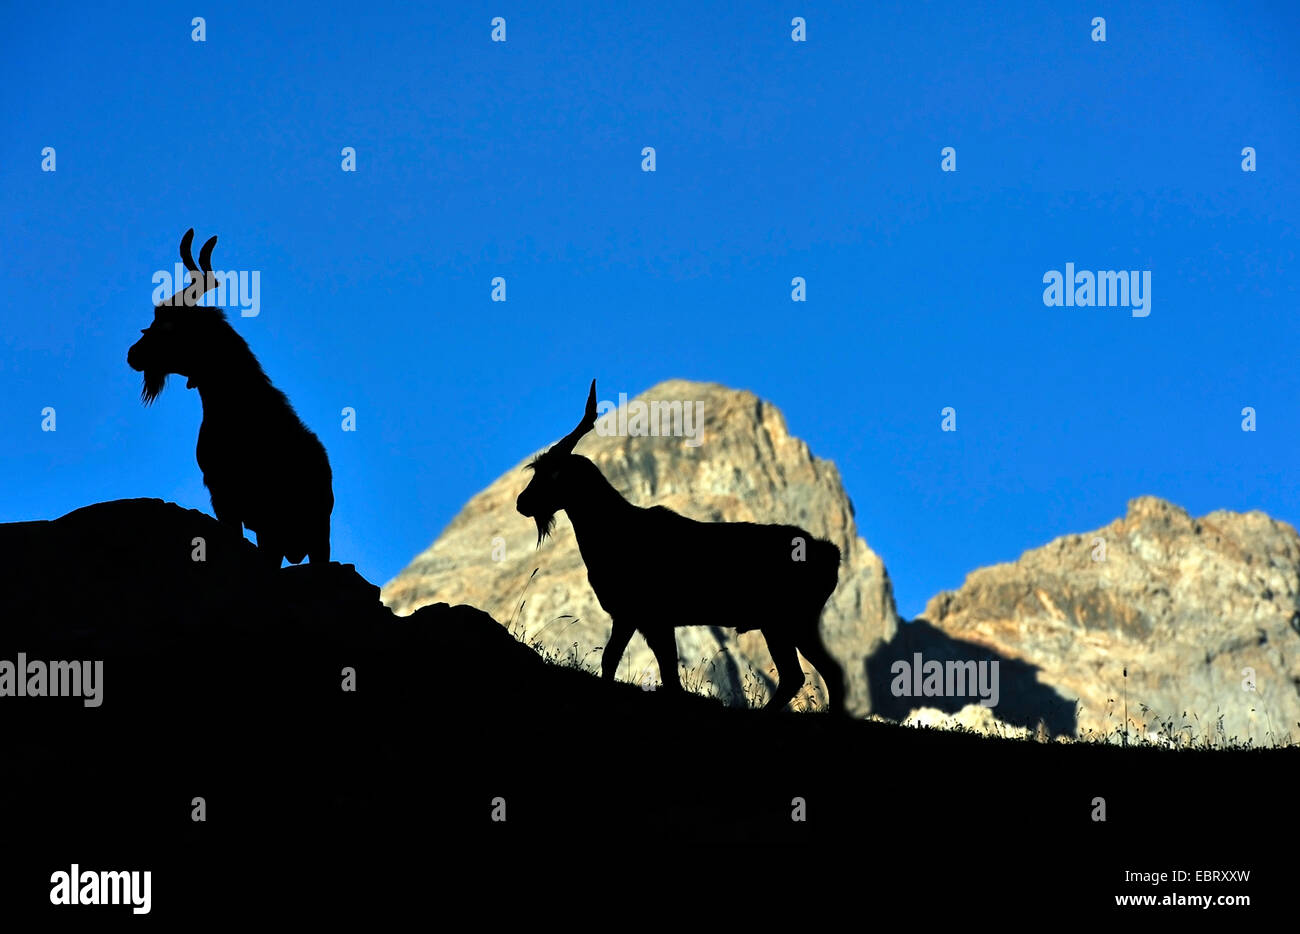 domestic goat (Capra hircus, Capra aegagrus f. hircus), two goats in the french Alps, silhouette, France, Savoie - Stock Image